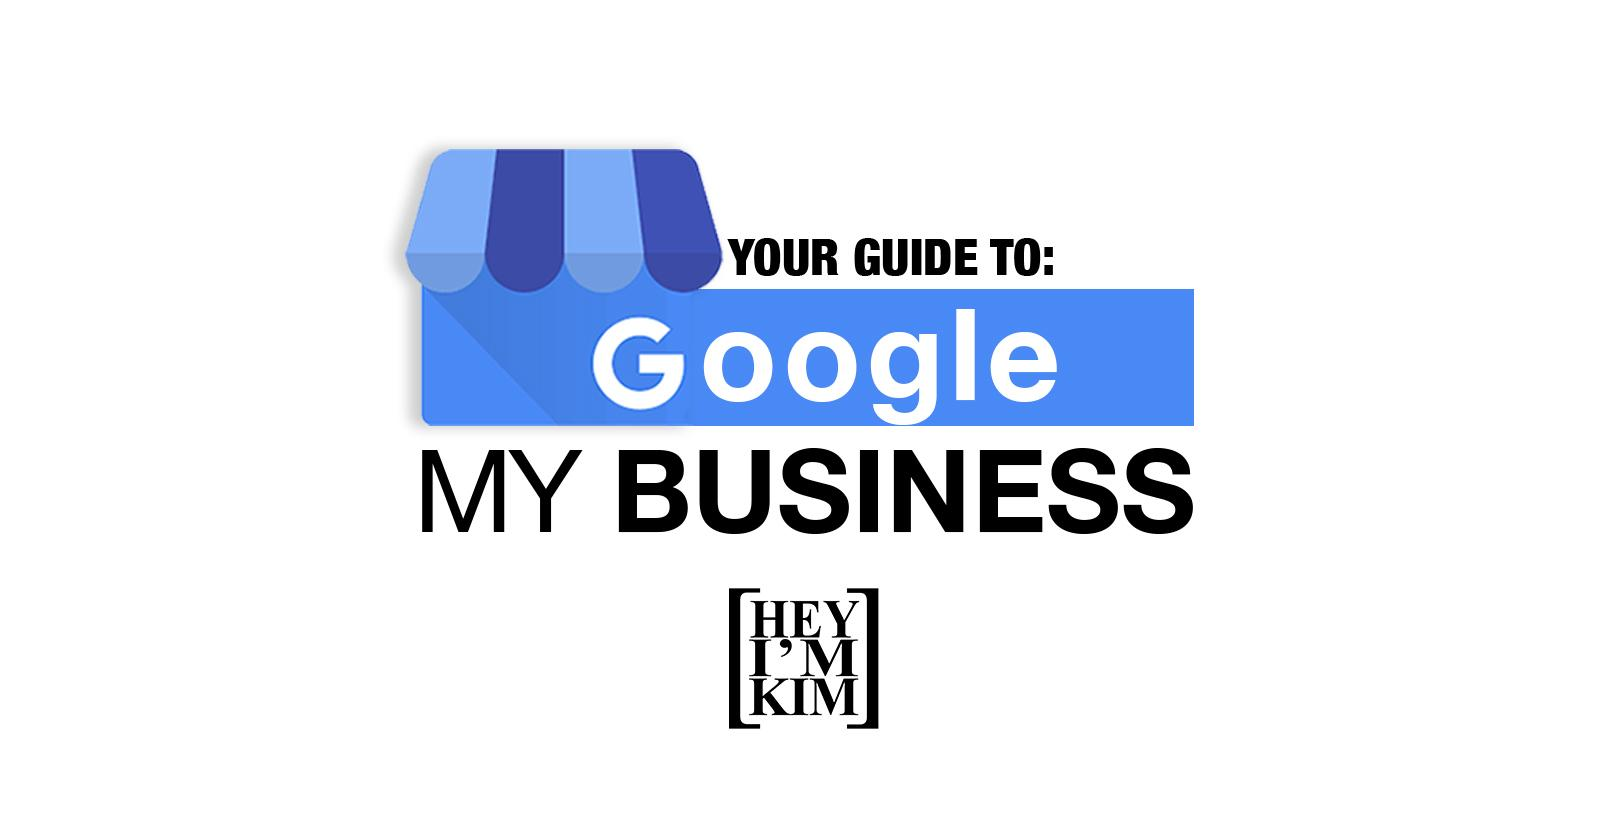 Your Guide to Google My Business